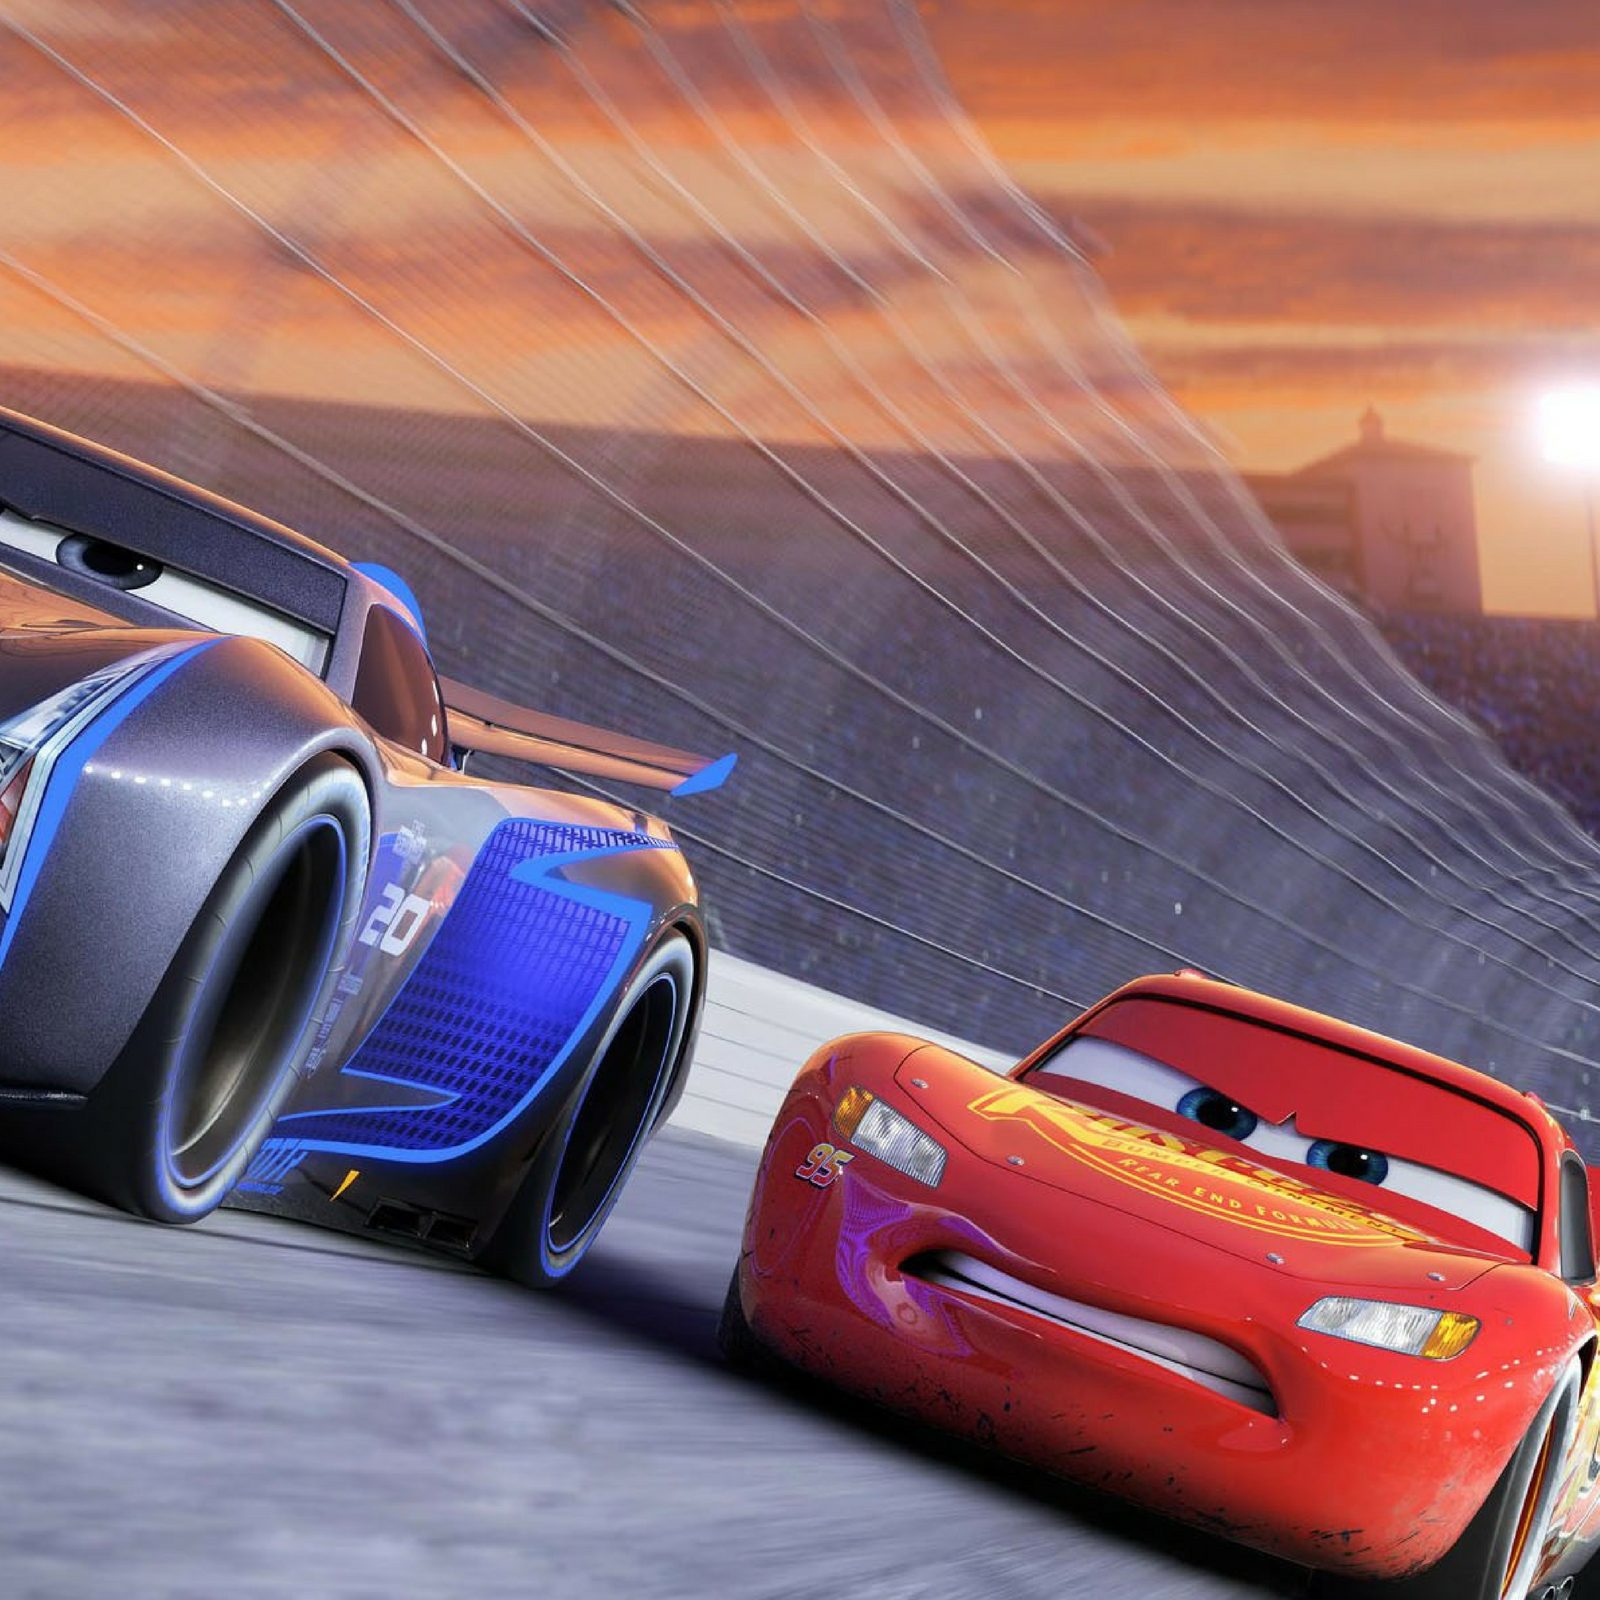 Why There Are No Humans In Pixar's 'Cars'